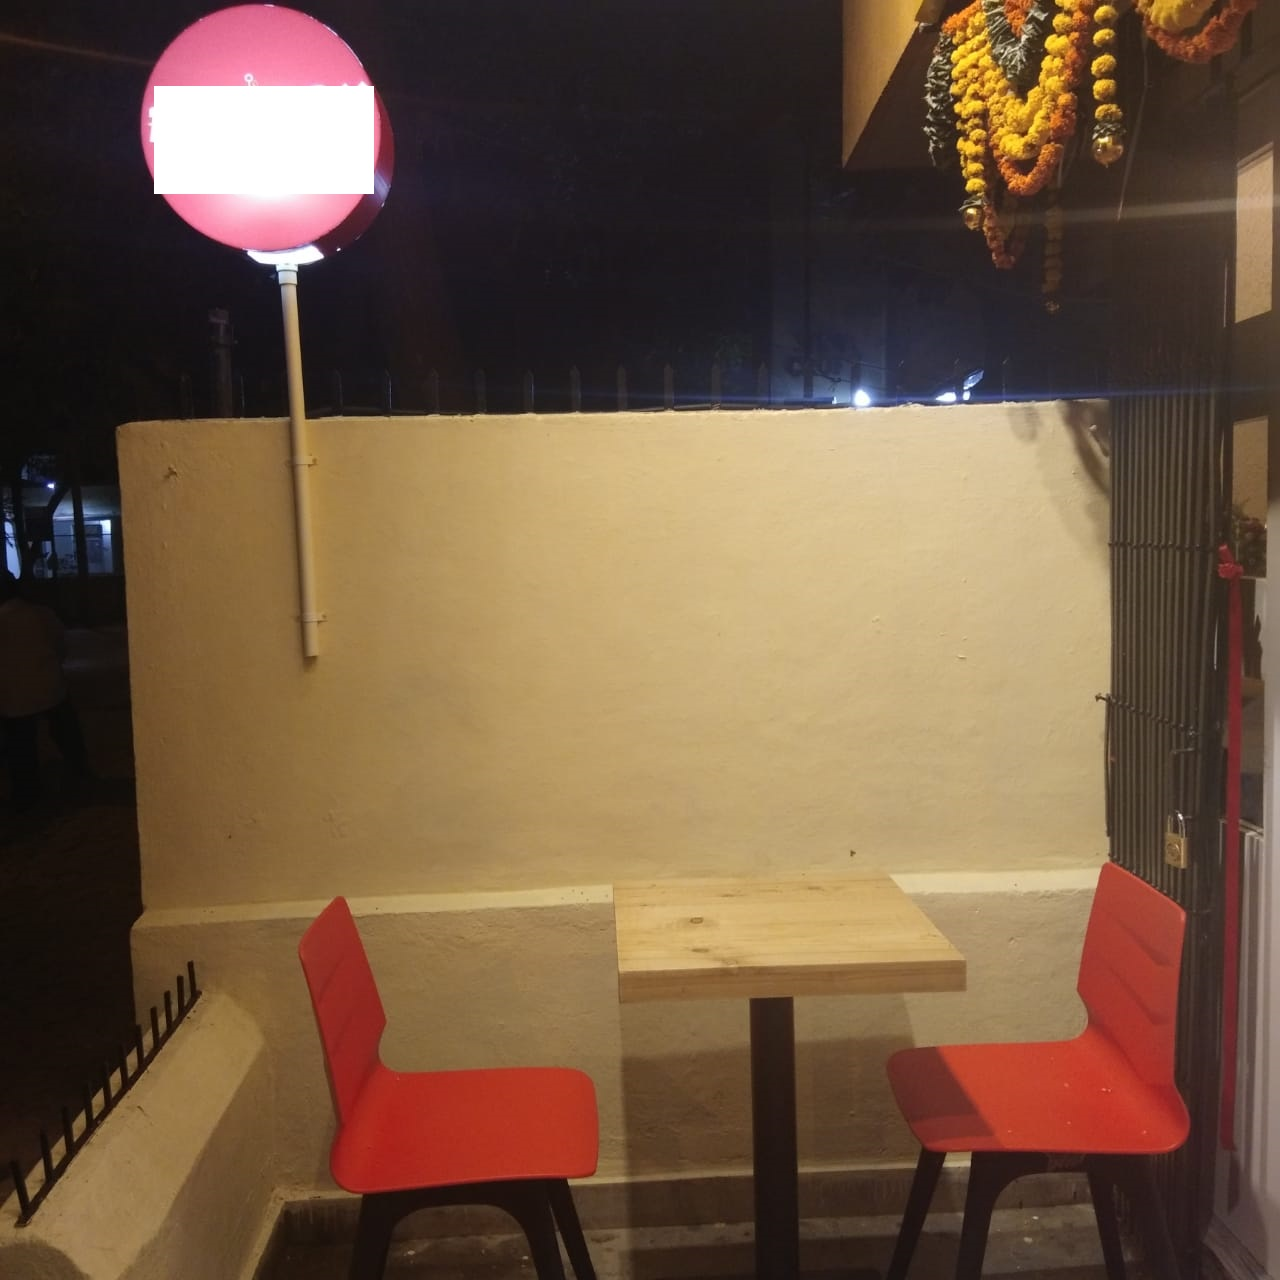 Running Well-Known Restaurant Business for Sale in Borivali Mumbai